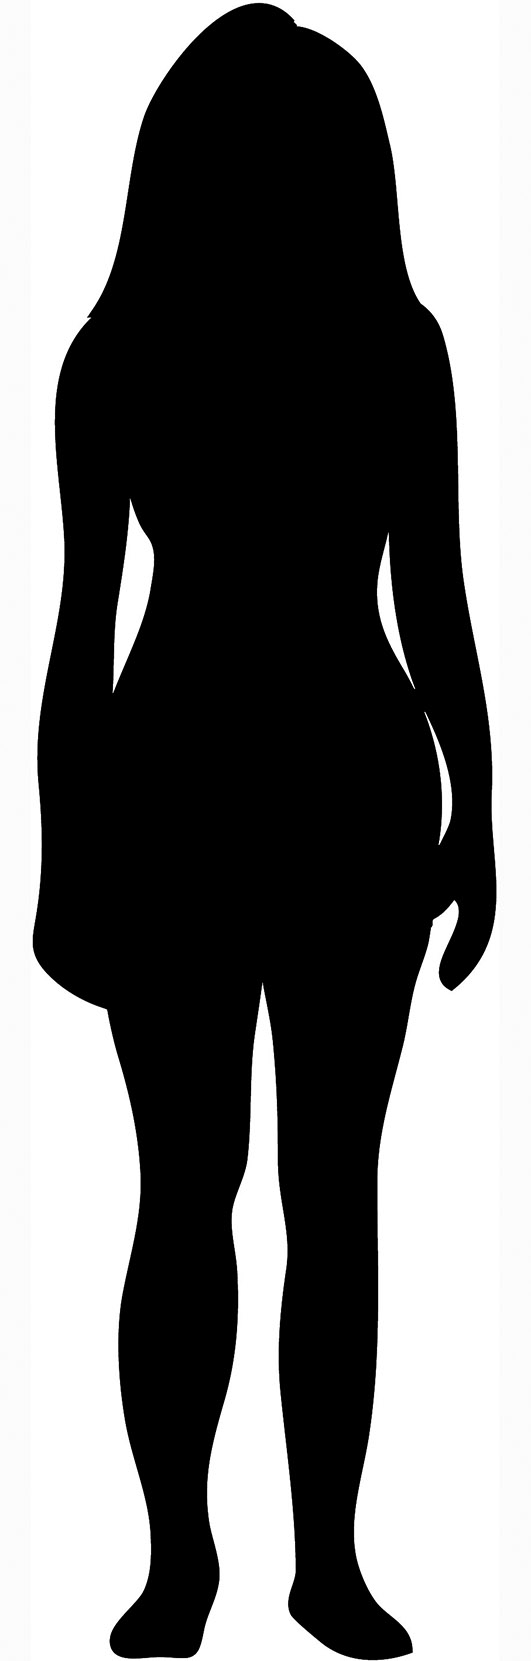 531x1661 Female Silhouette